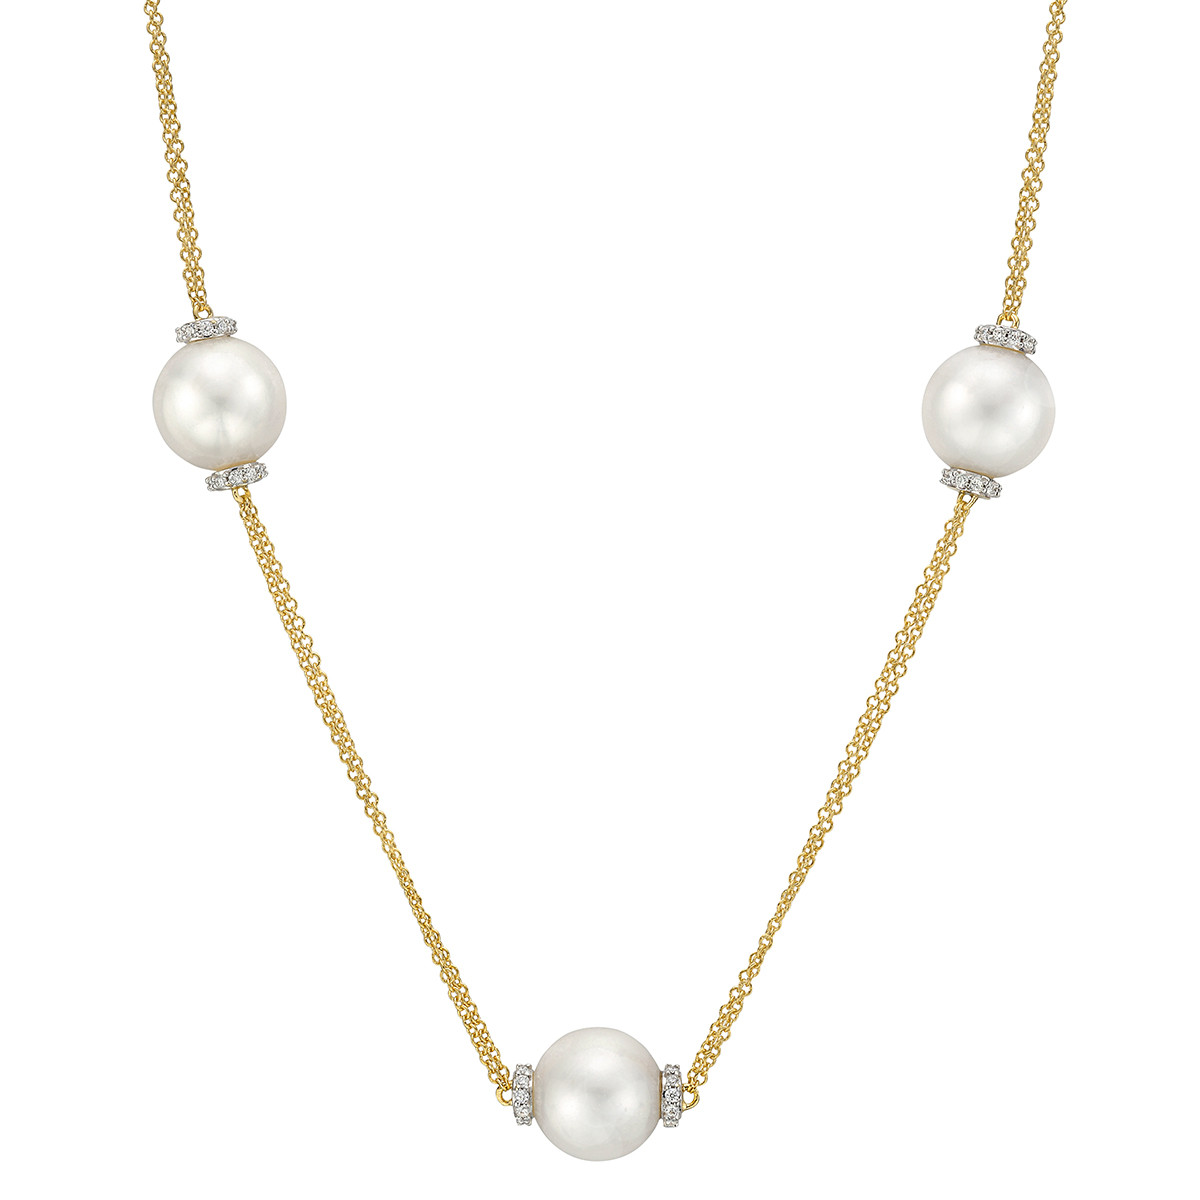 Three Pearl & Diamond Chain Necklace